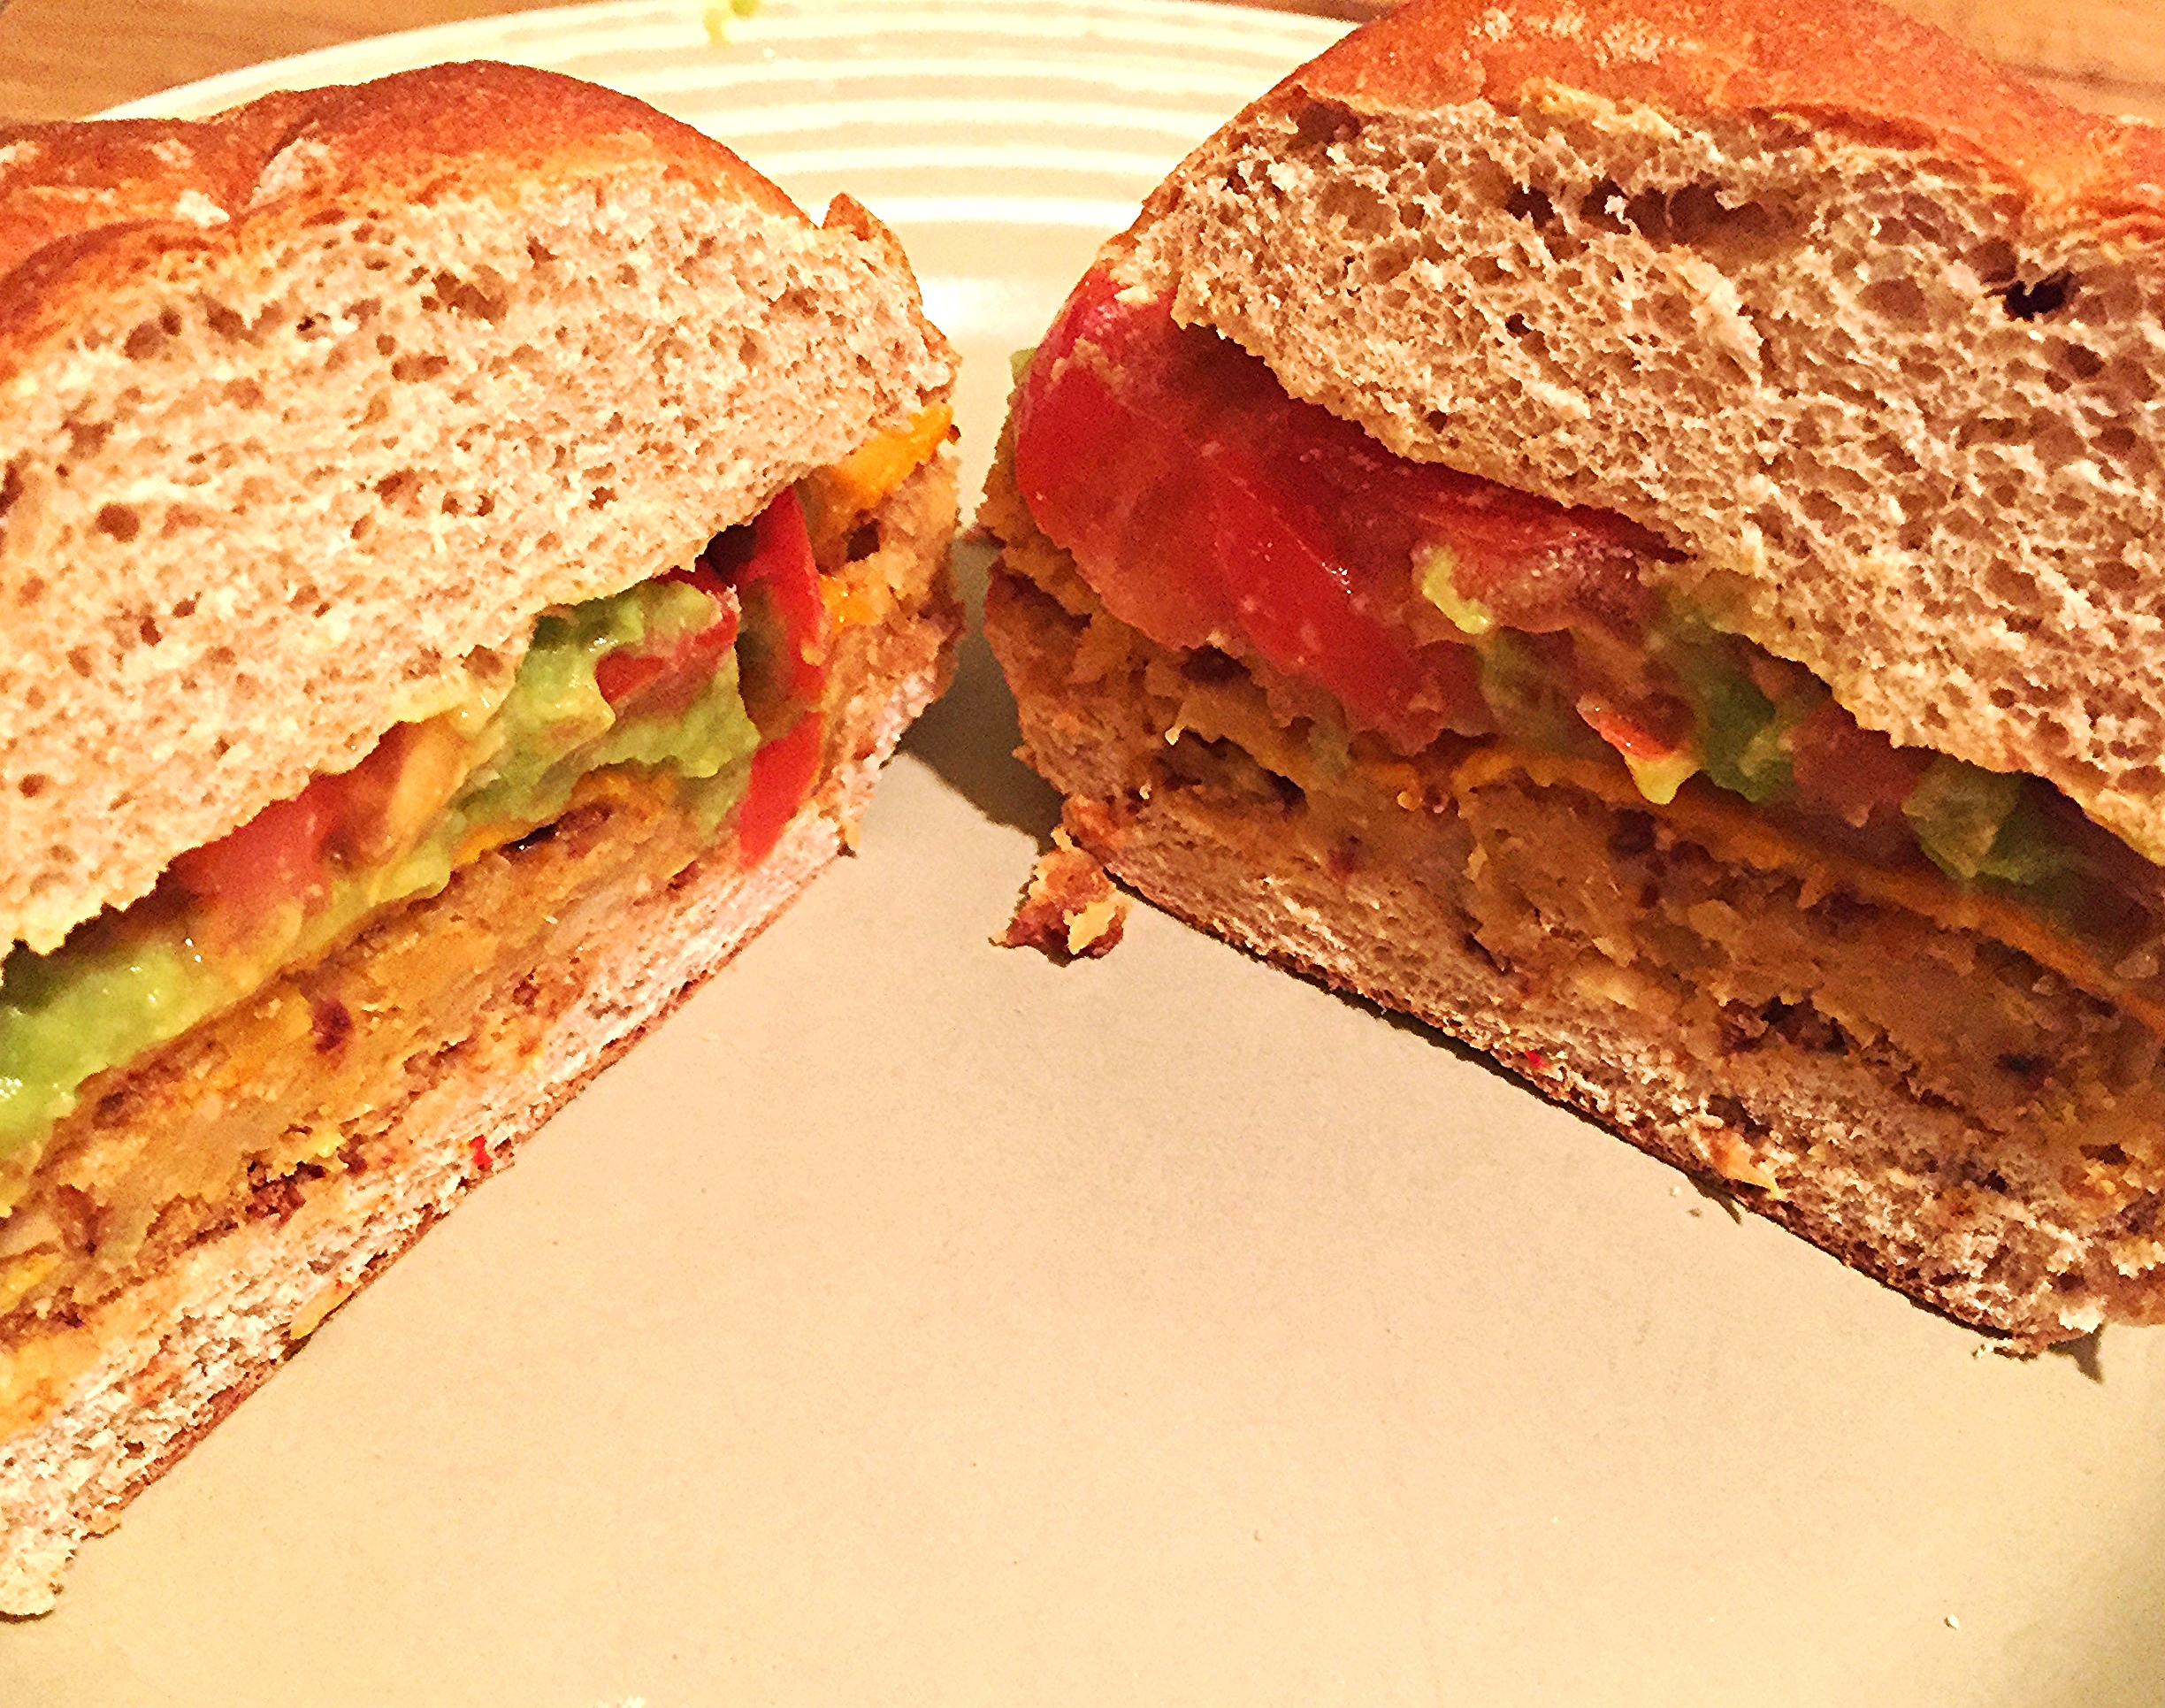 A vegan burger that will leave you satisfied, not in a food coma